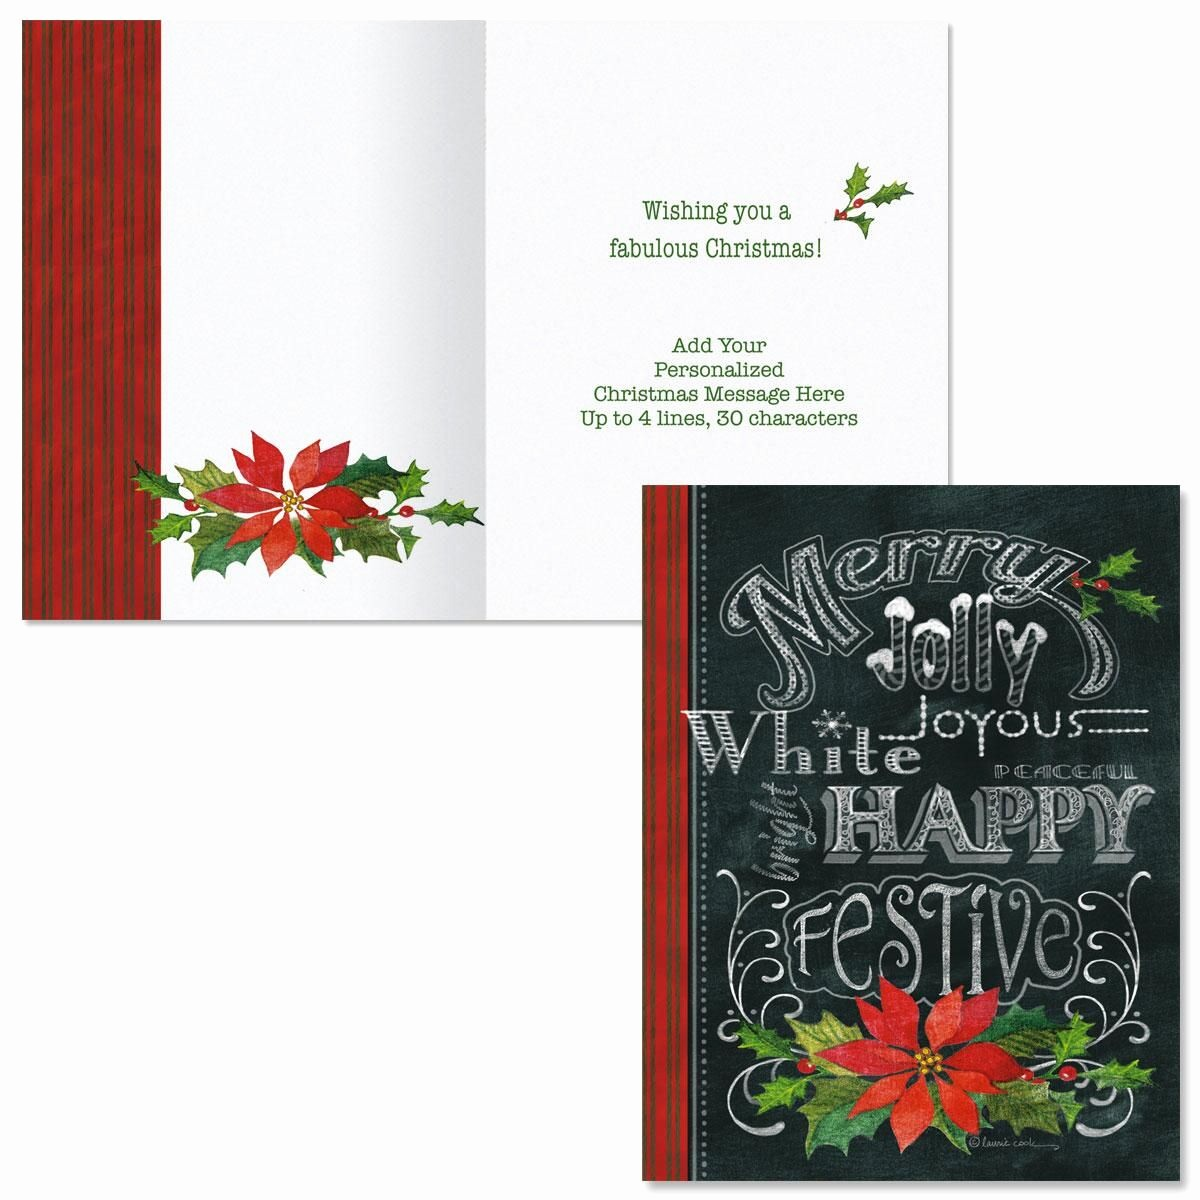 Merry Christmas Notes for Cards Elegant Merry Jolly Festive Note Card Size Christmas Cards